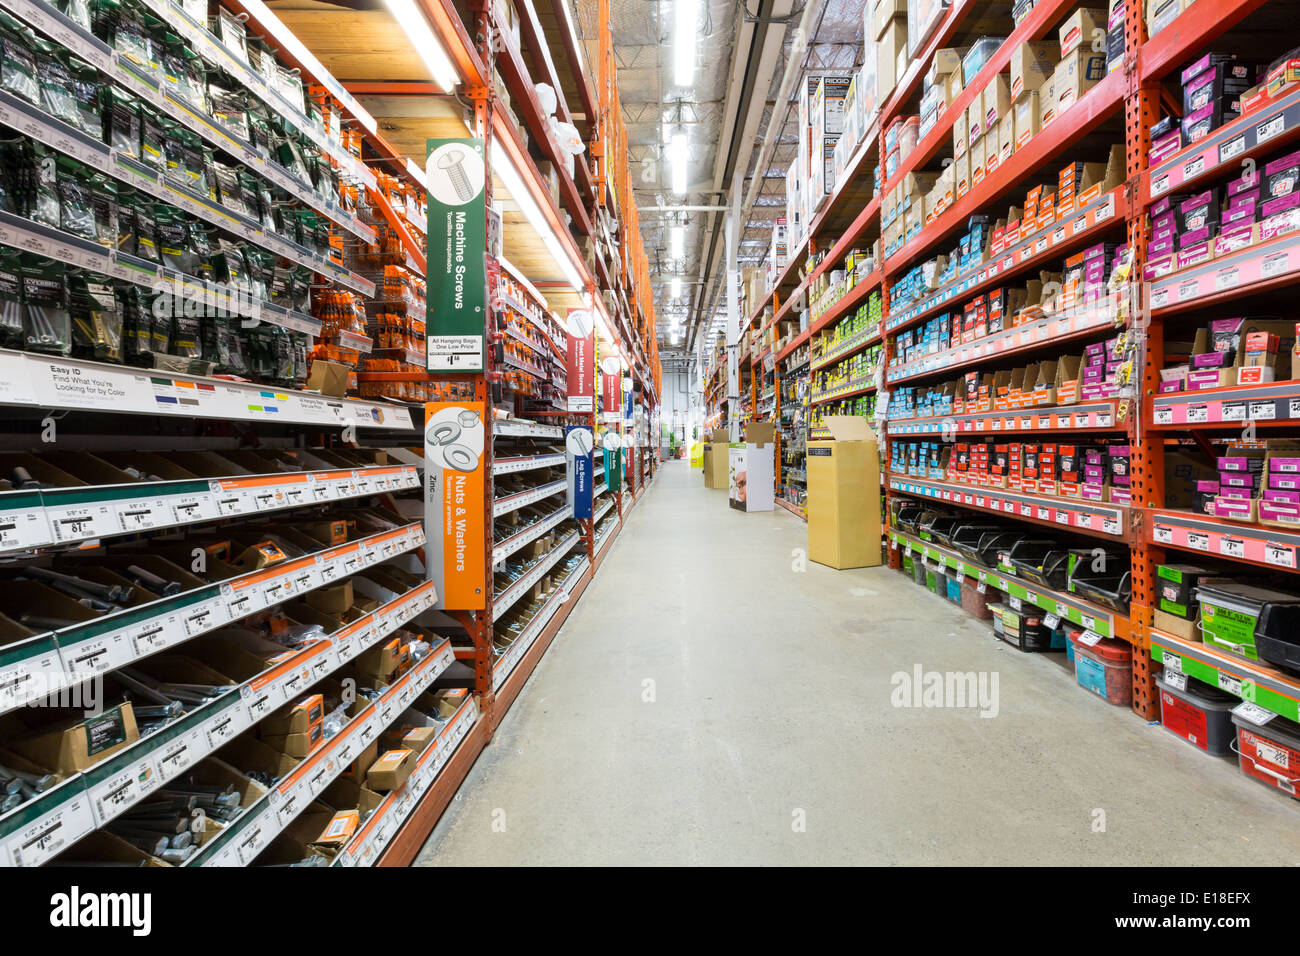 Aisle in a Home Depot hardware store. - Stock Image